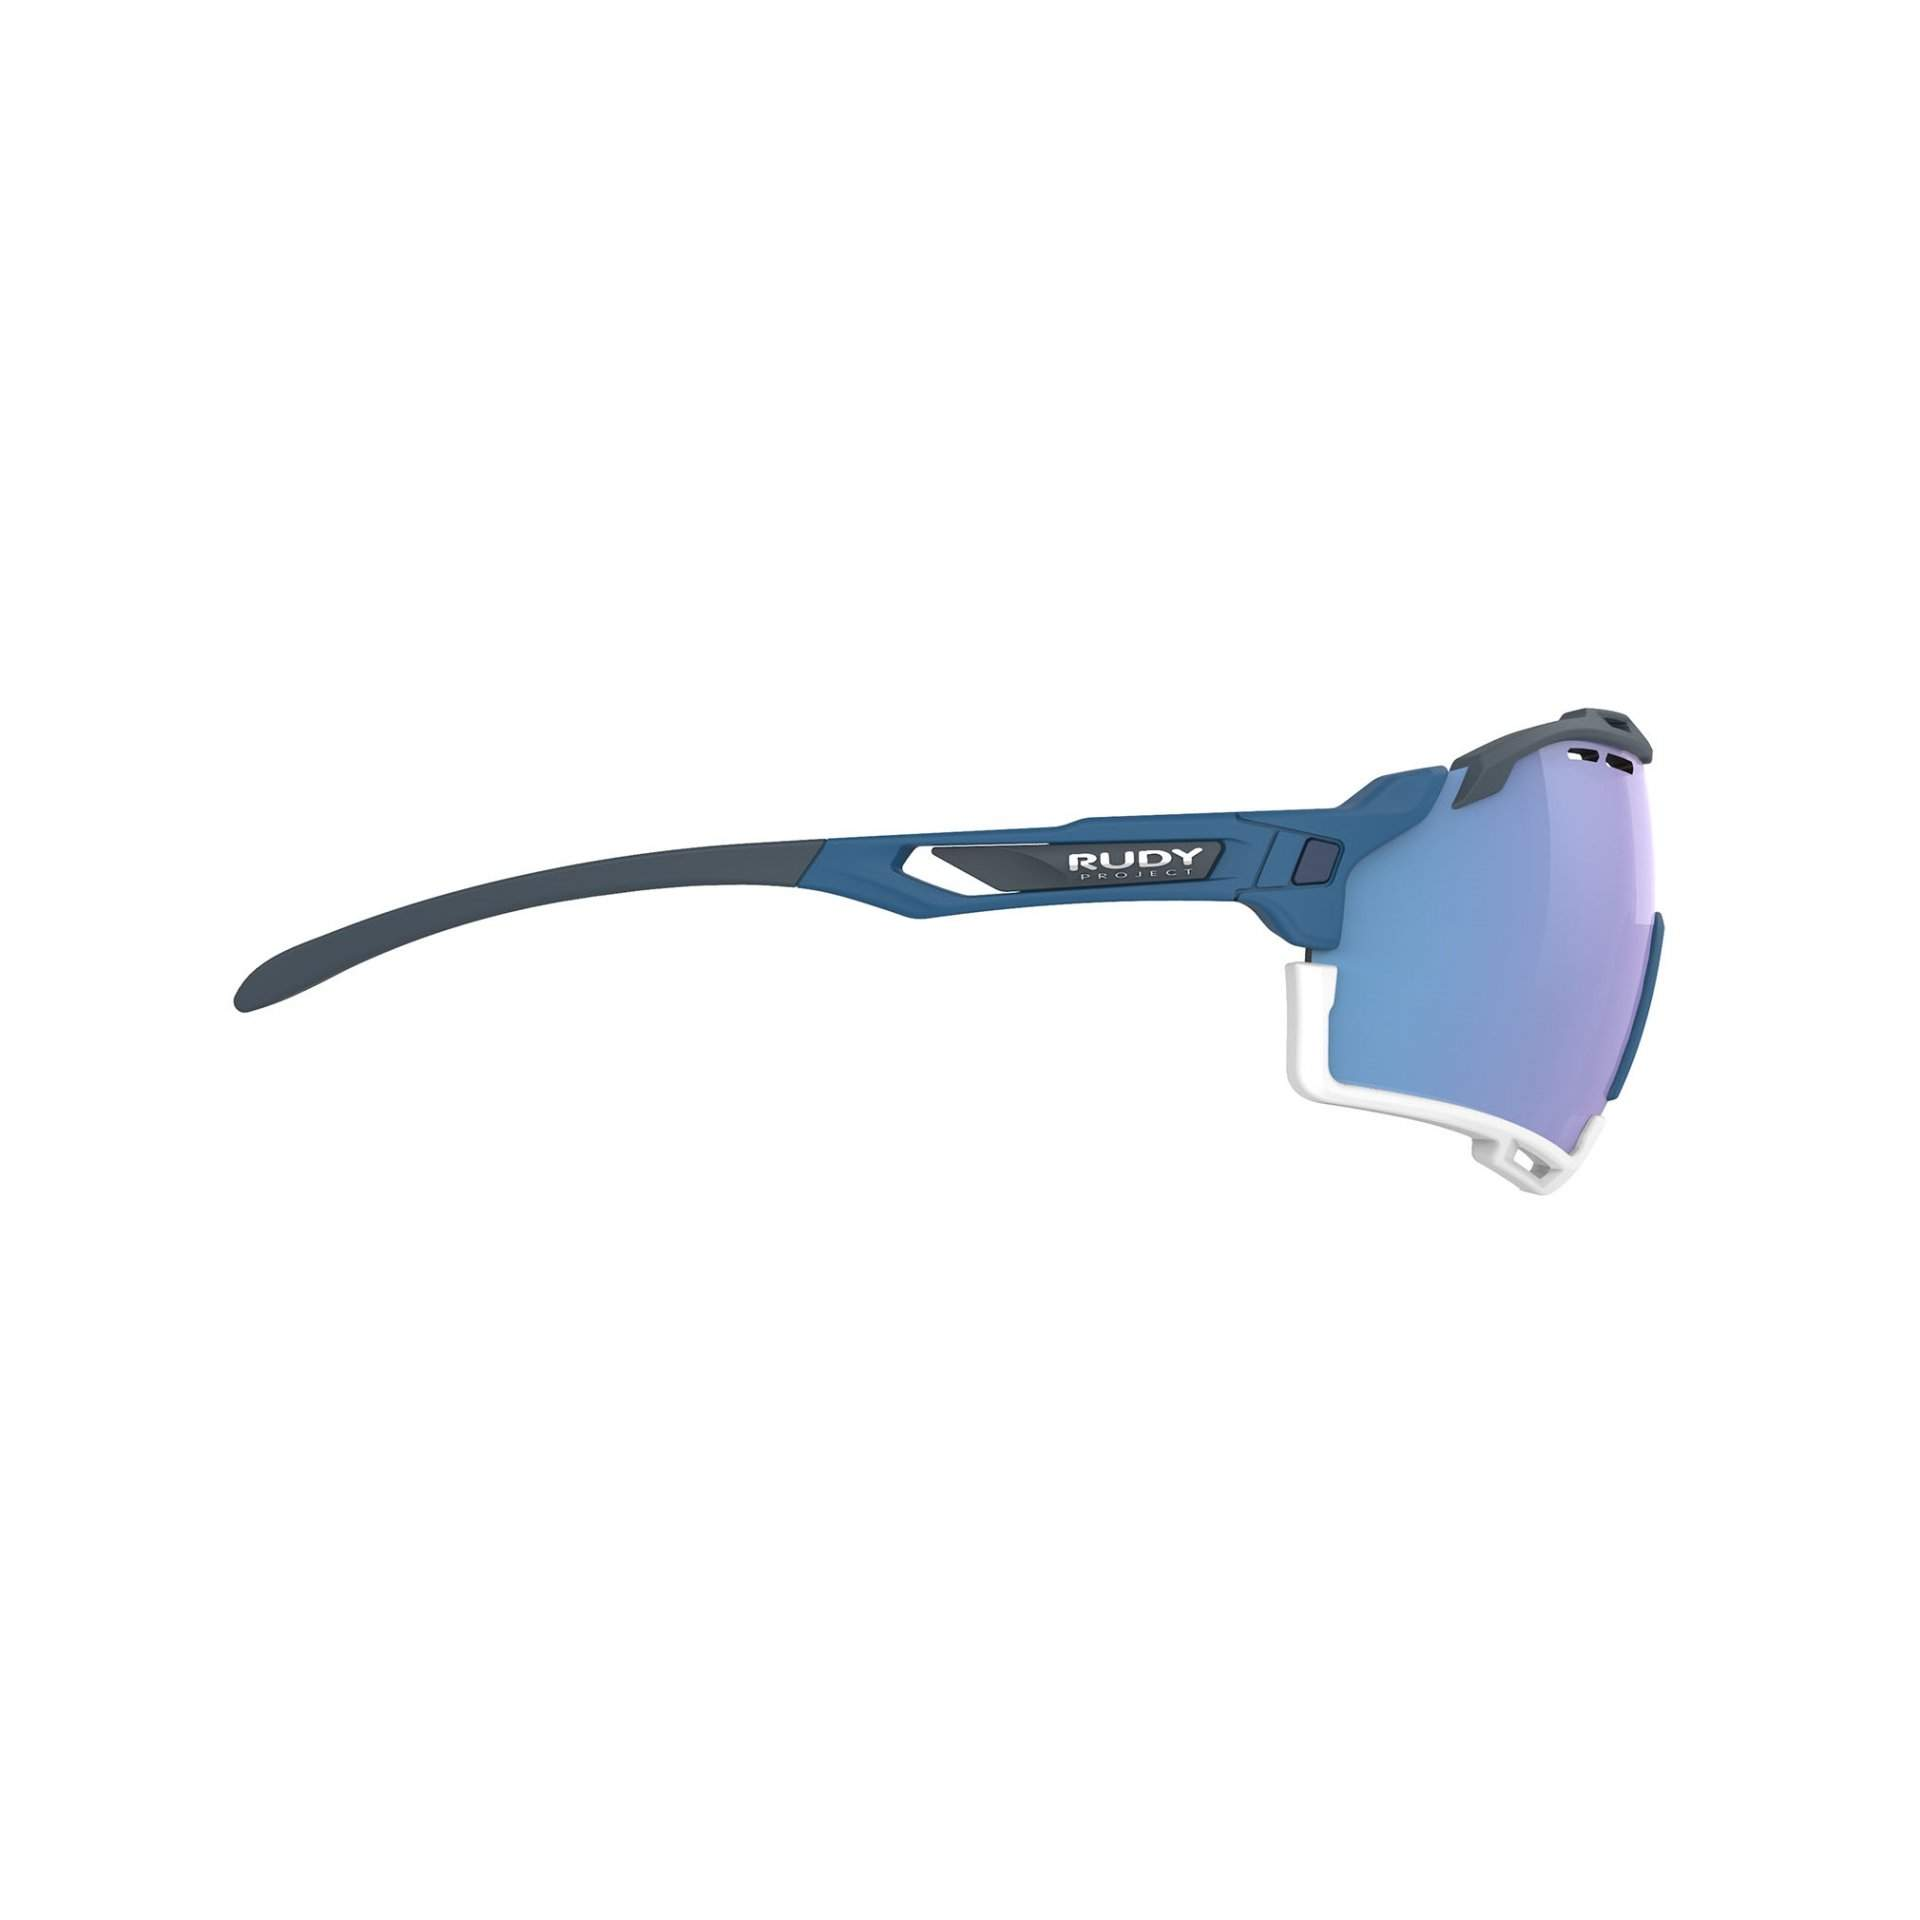 OKULARY RUDY PROJECT CUTLINE MULTILASER ICE + PACIFIC BLUE MATTE SP6368490000 Z BOKU